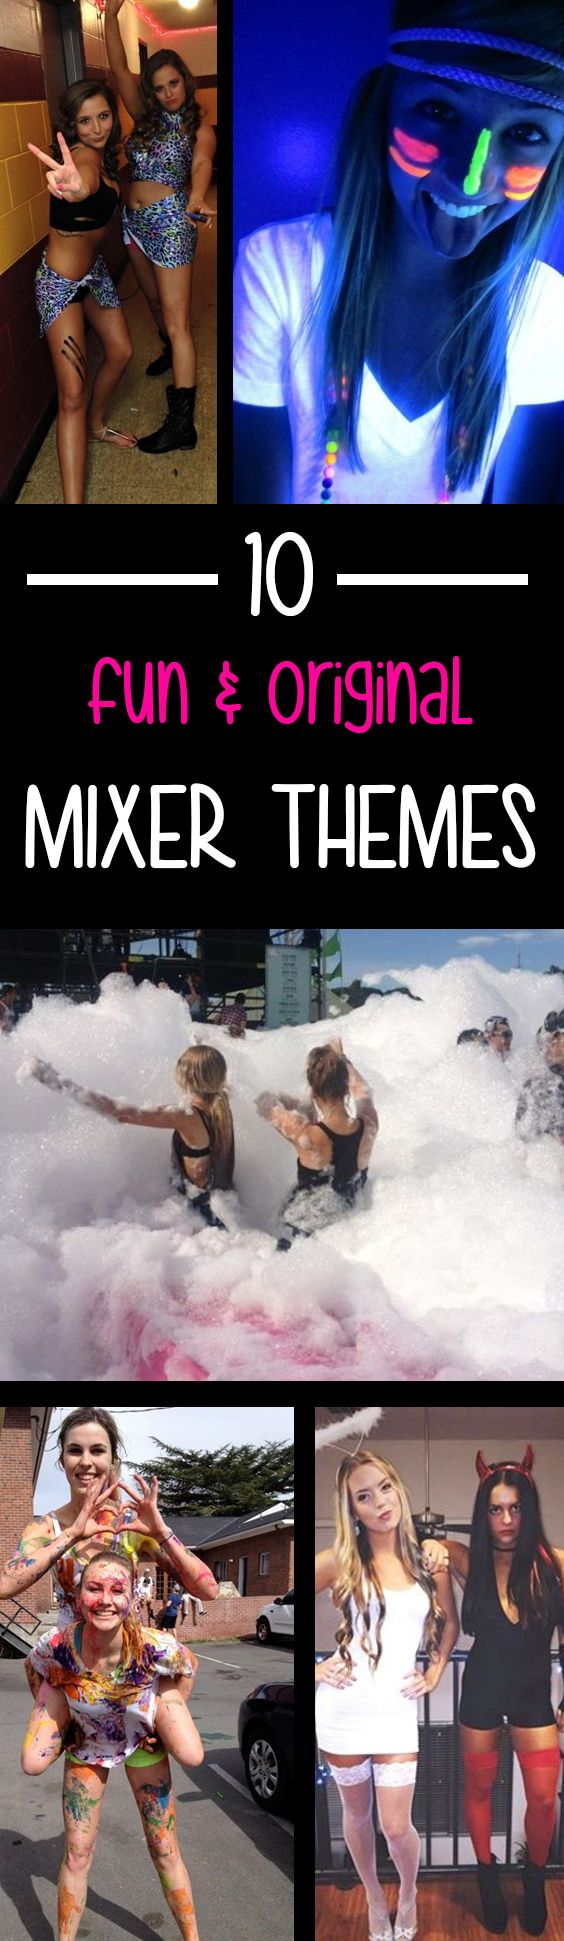 10 Fun and Original Mixer Themes